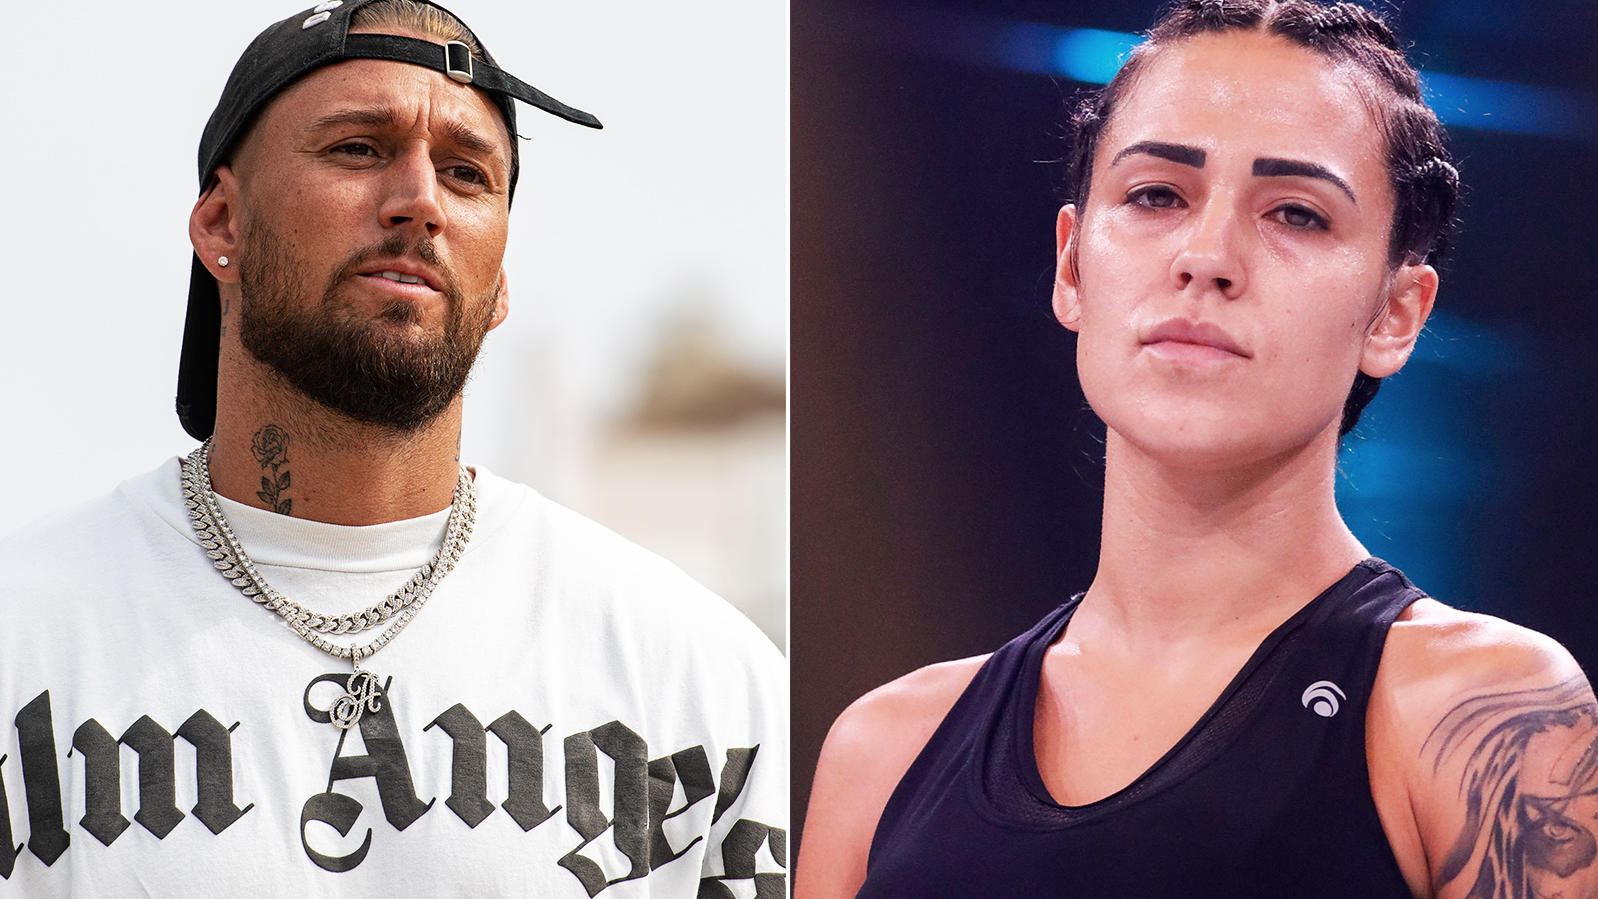 Mike Heiter Is Said To Have Cheated On Elena Miras De24 News English